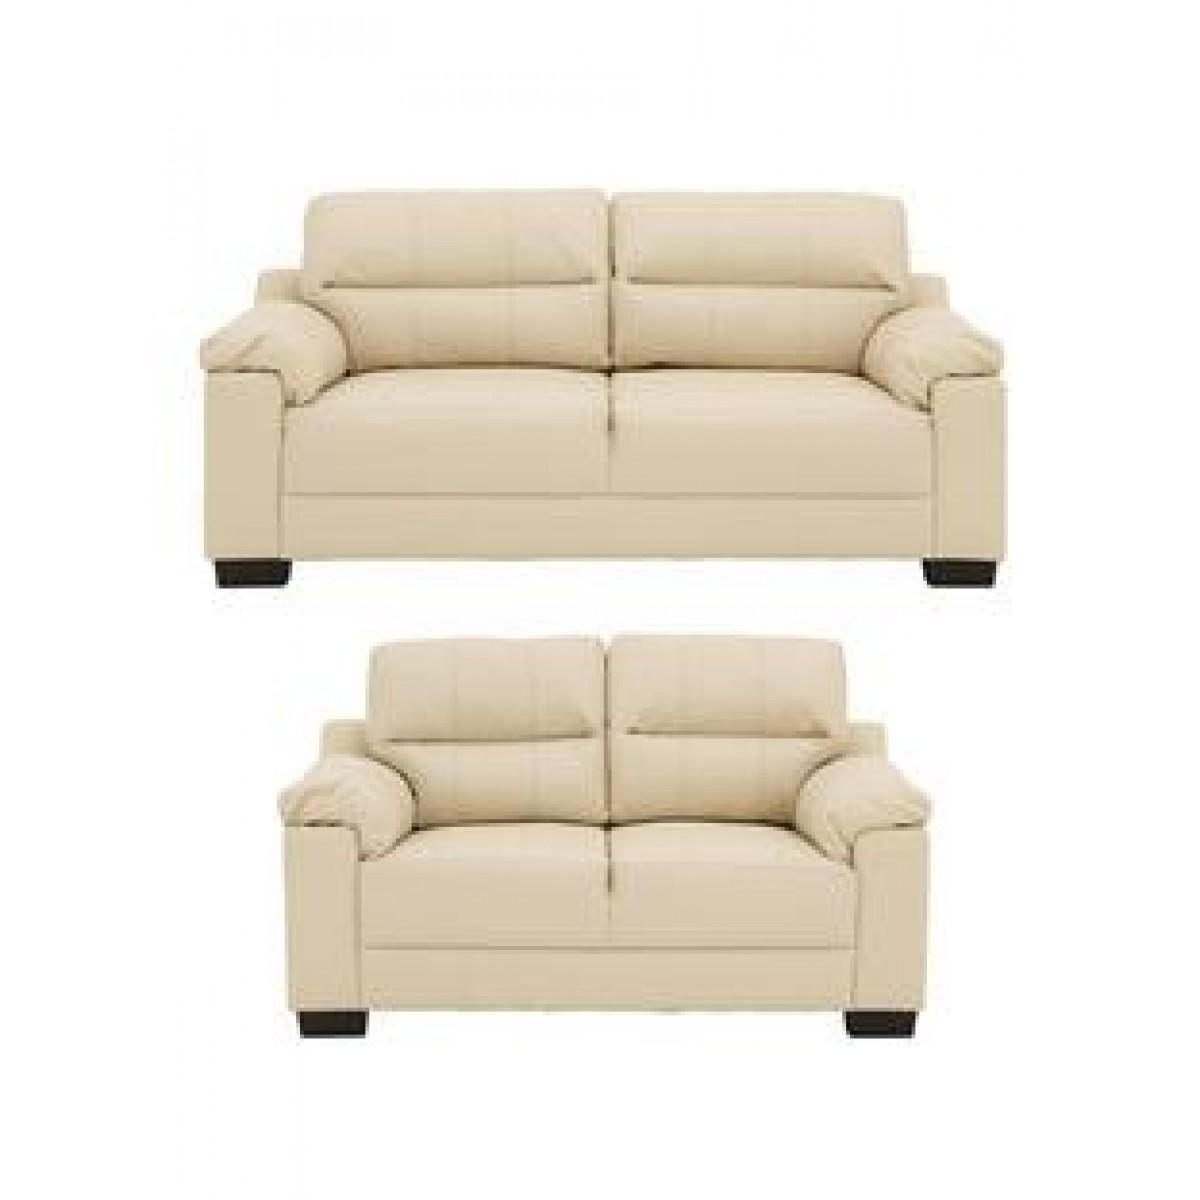 Saskia 3 Seater Plus 2 Seater Sofa Set – Furnico Village Regarding 2 Seater Sofas (Image 18 of 20)